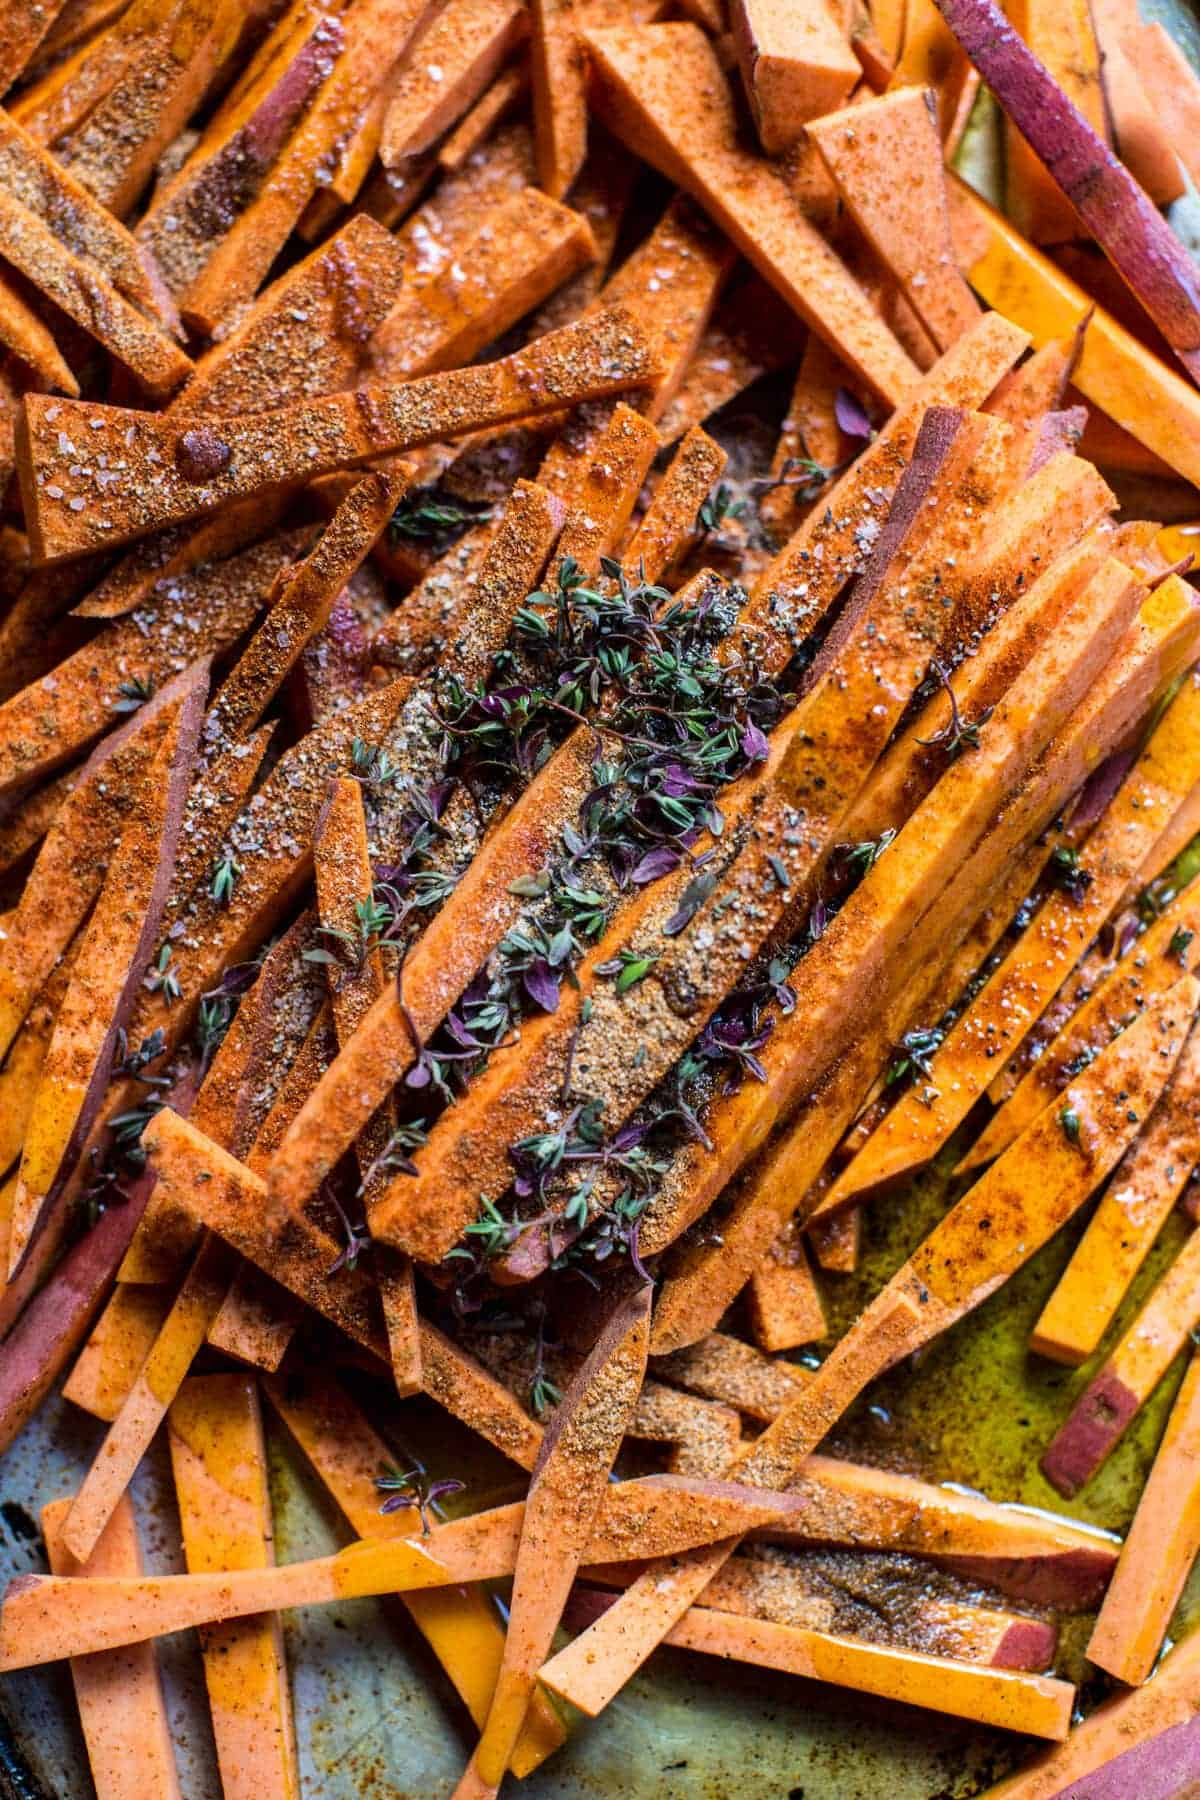 Skinny Cajun Sweet Potato Fries with Garlic Cheese Sauce | halfbakedharvest.com @hbharvest